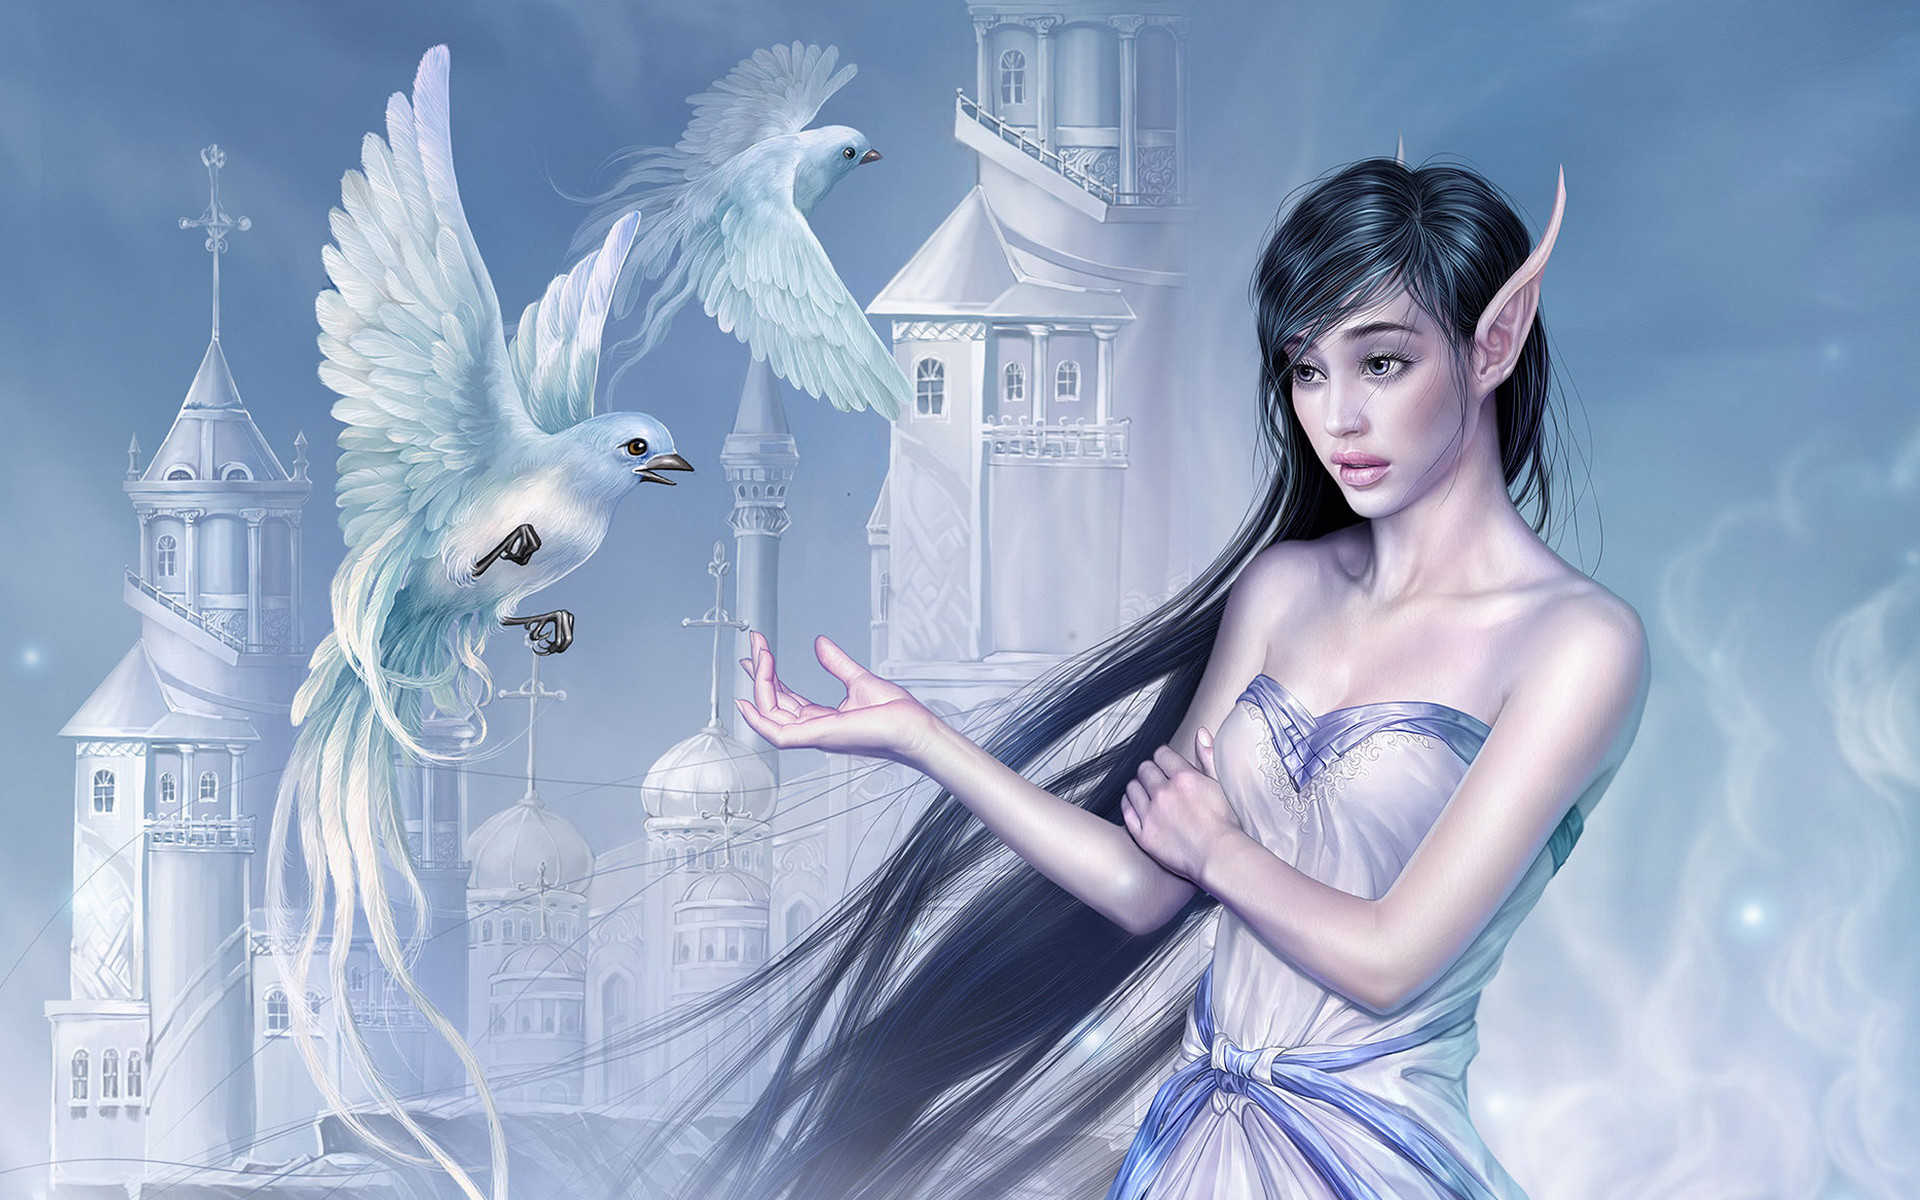 Elf girl wallpapers and images – wallpapers, pictures, photos